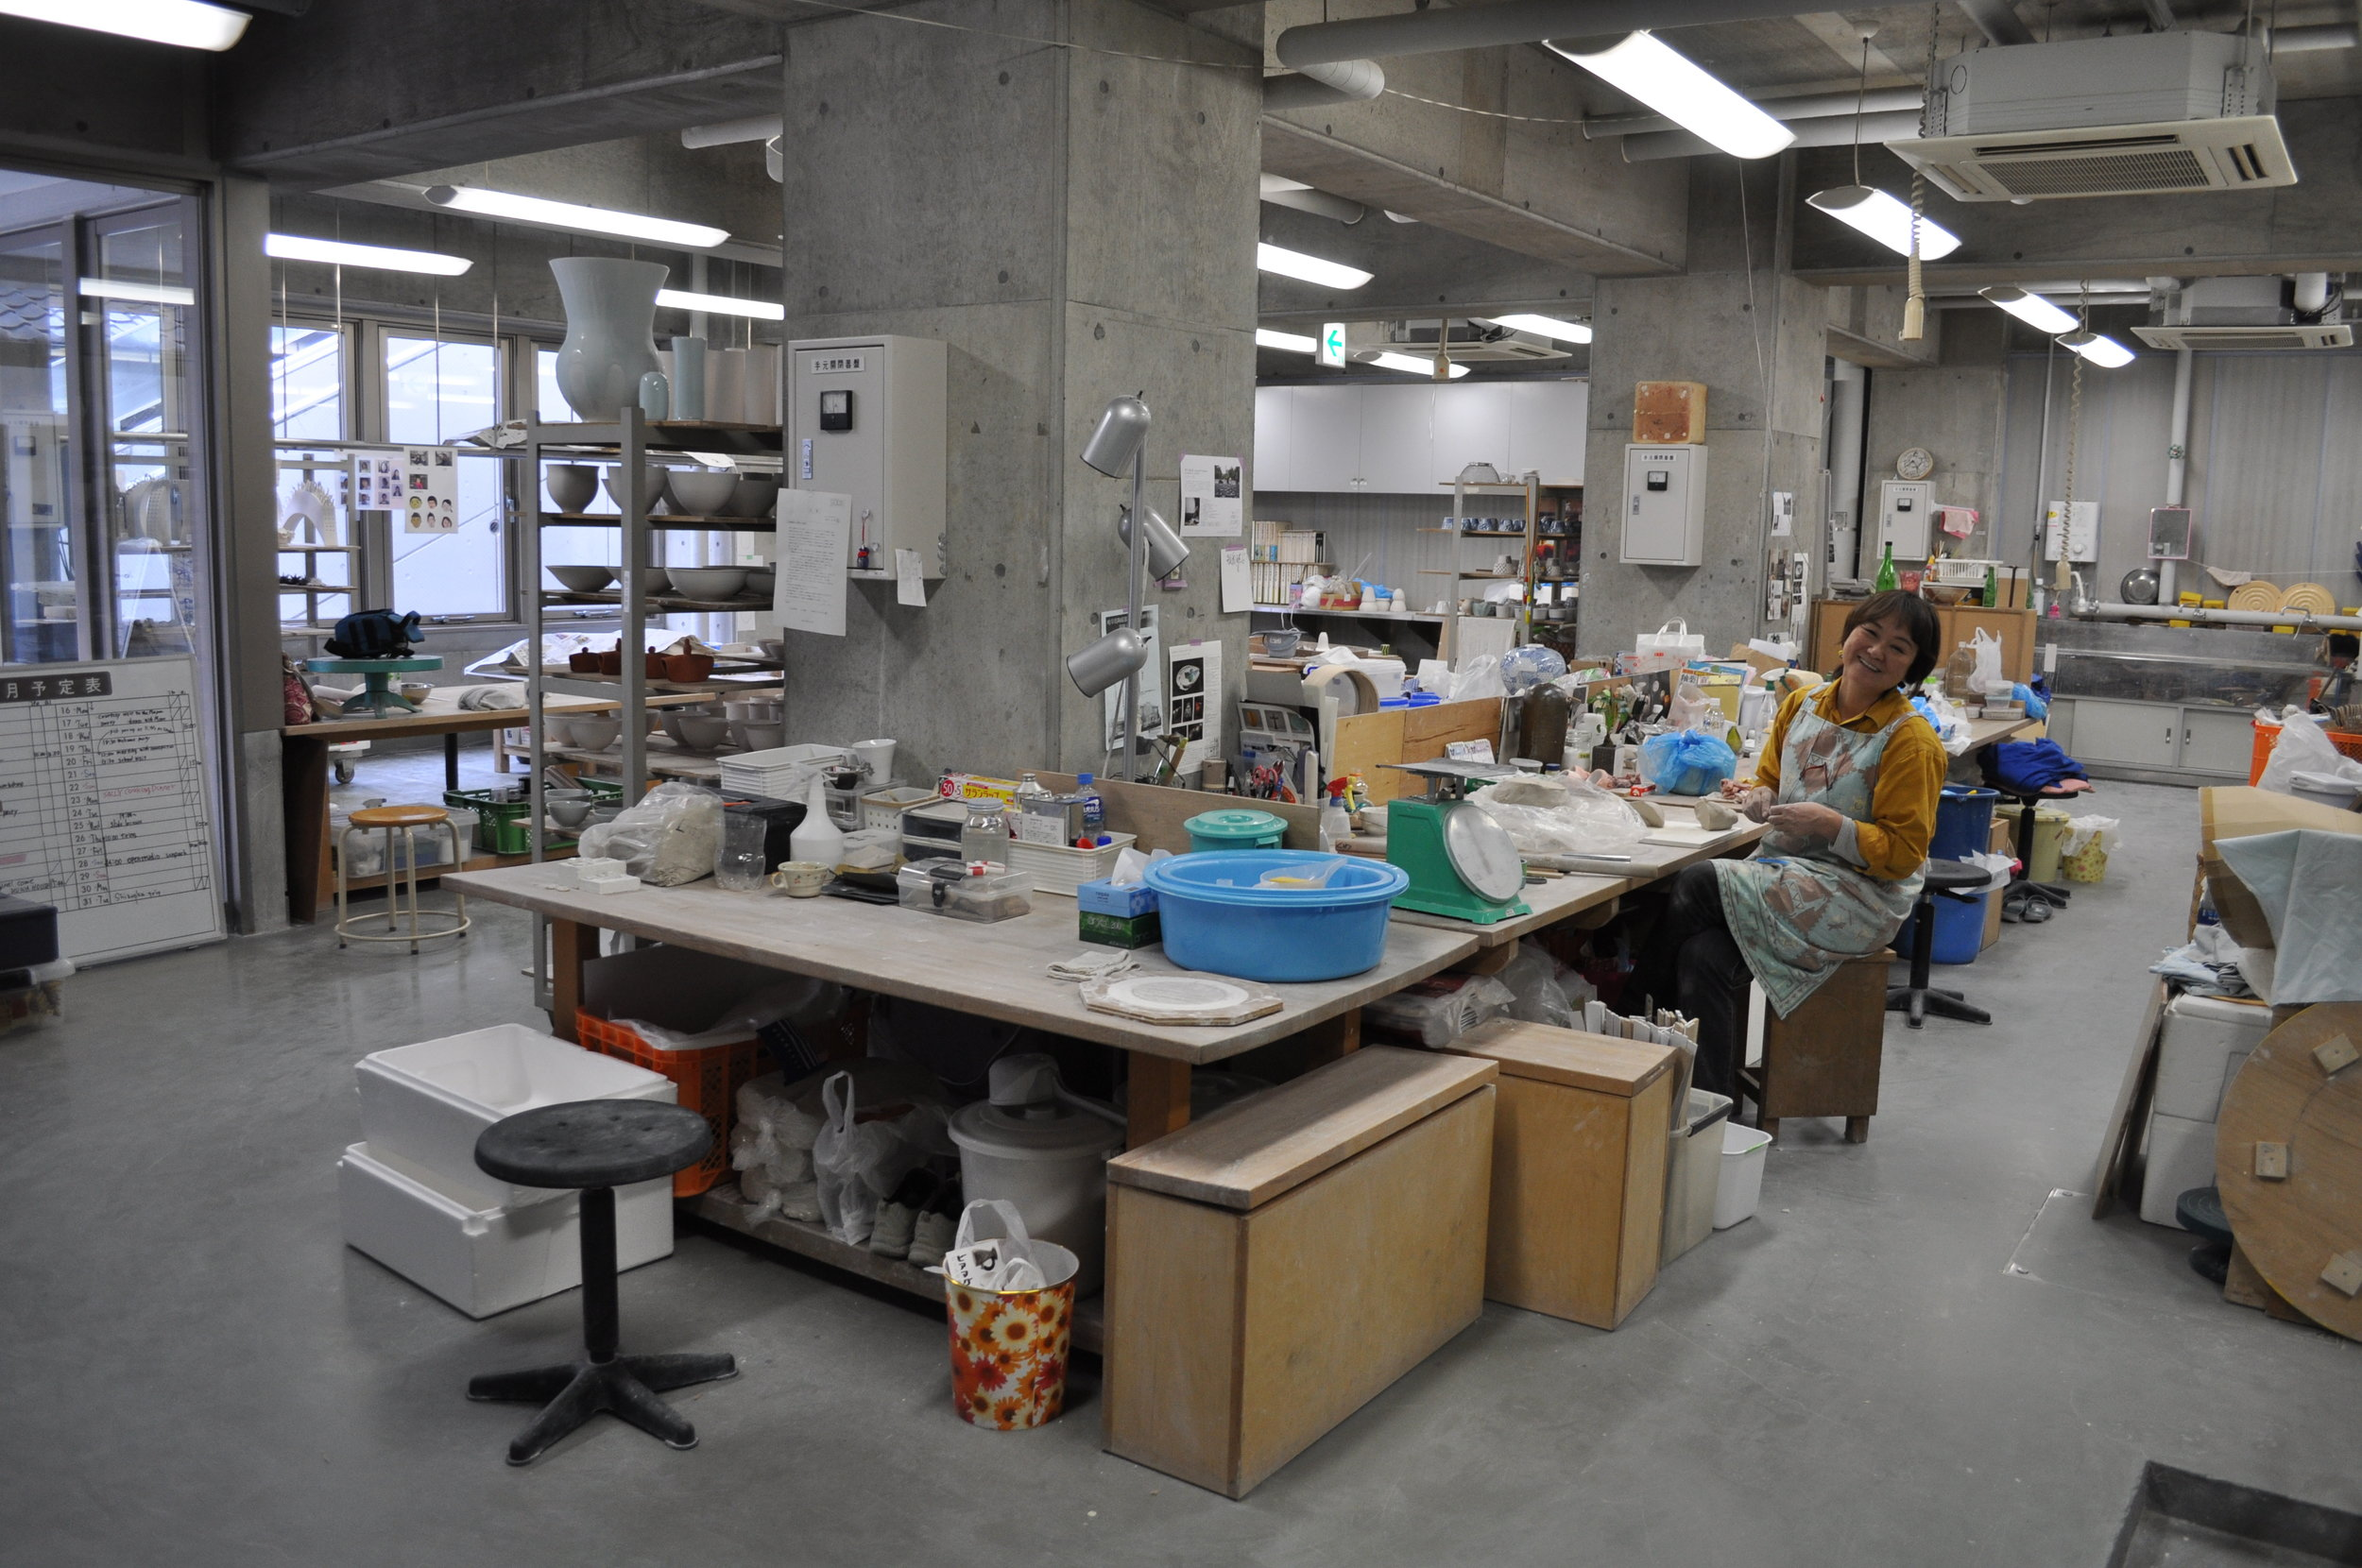 Studio_space_in_Seto_Japan.JPG